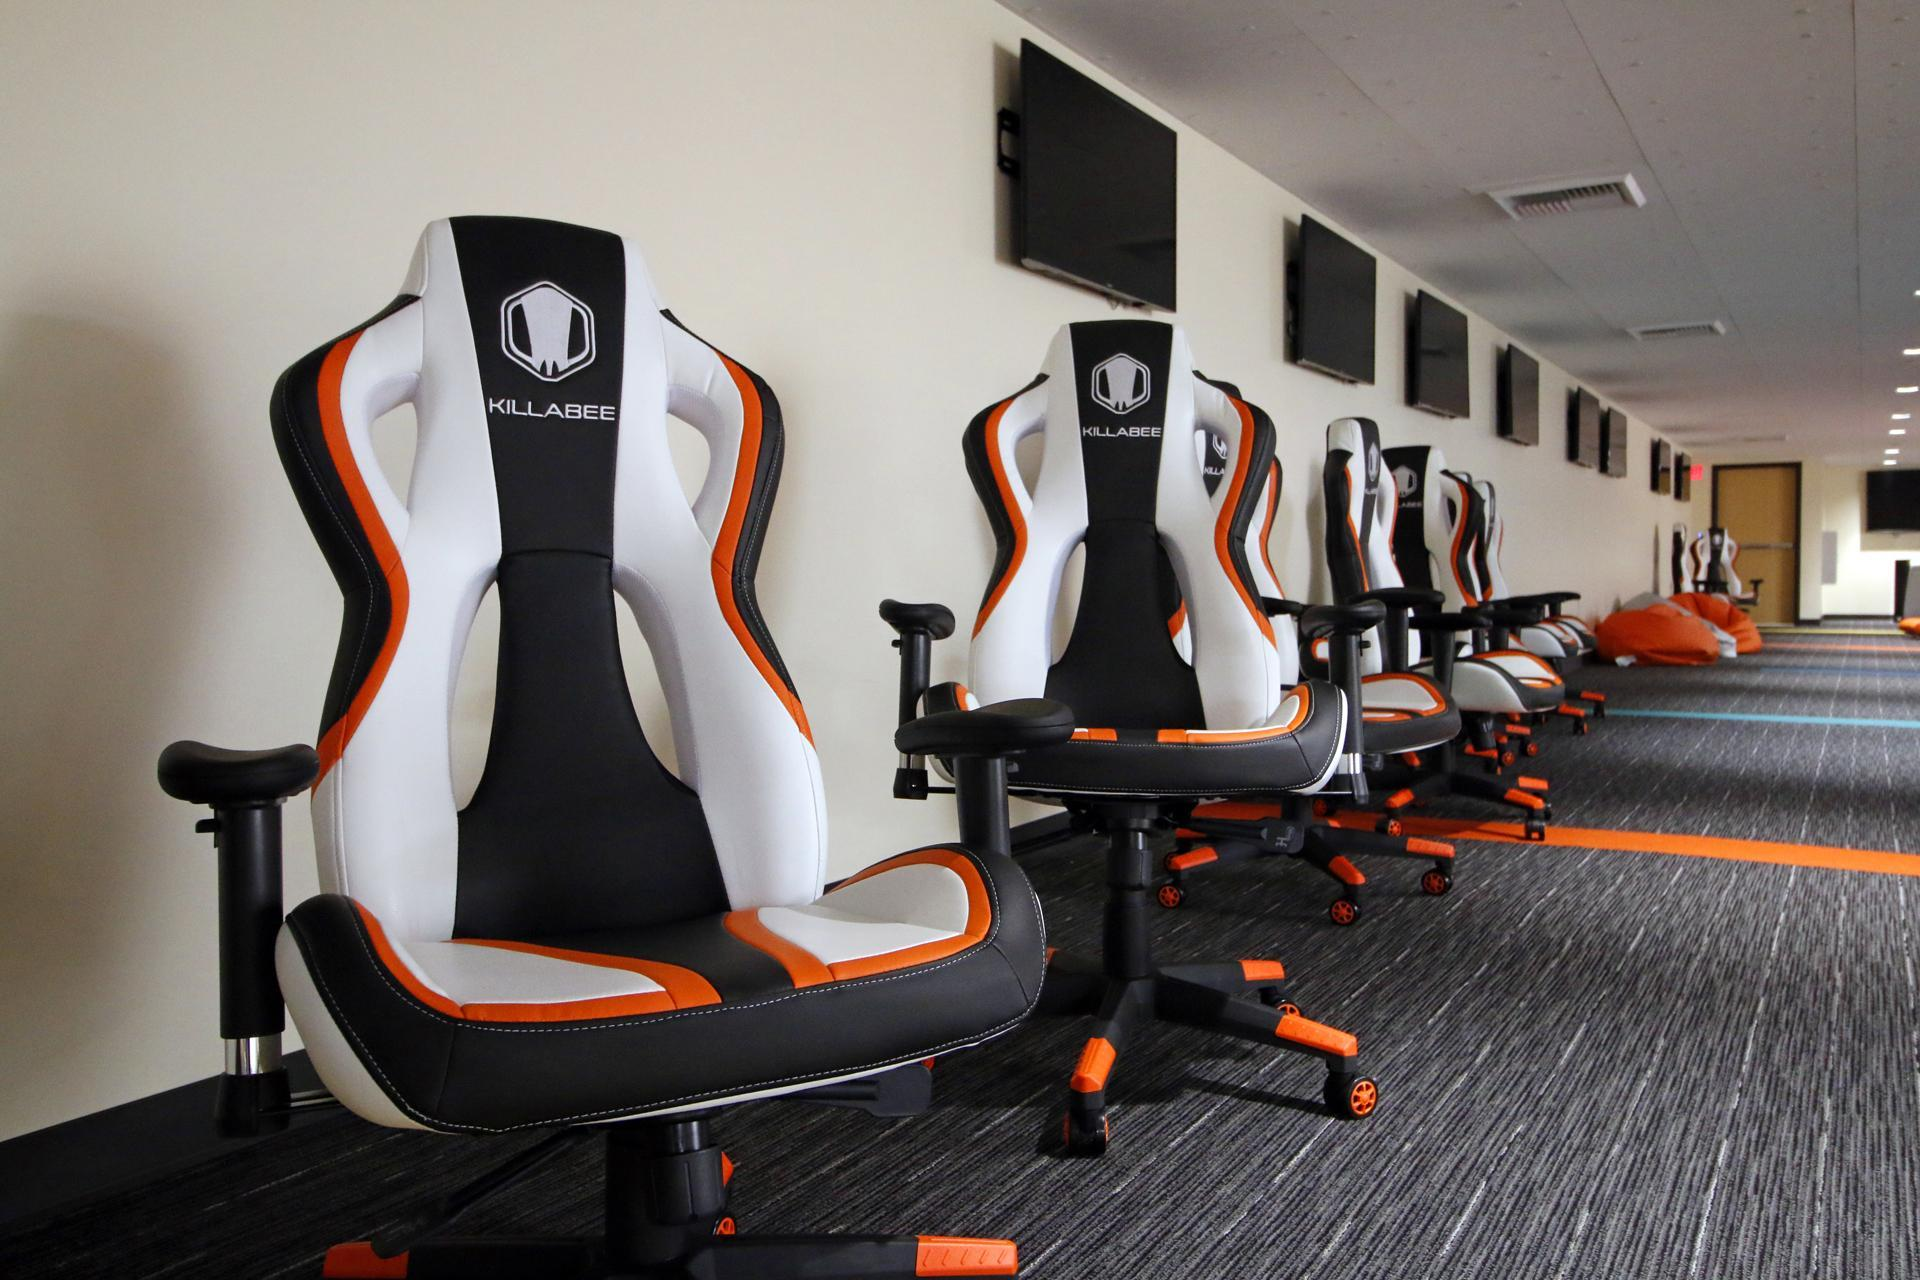 New e-gaming chairs